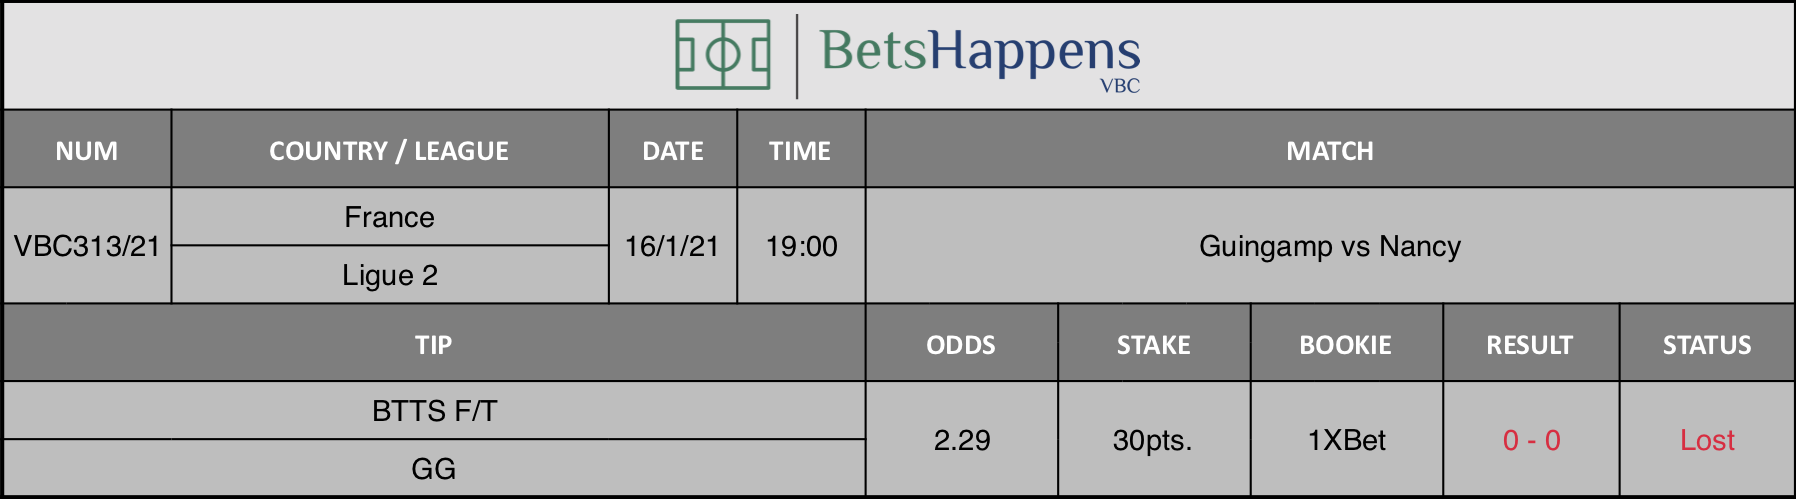 Results of our tip for the Guingamp vs Nancy match where BTTS F/T  GG is recommended.